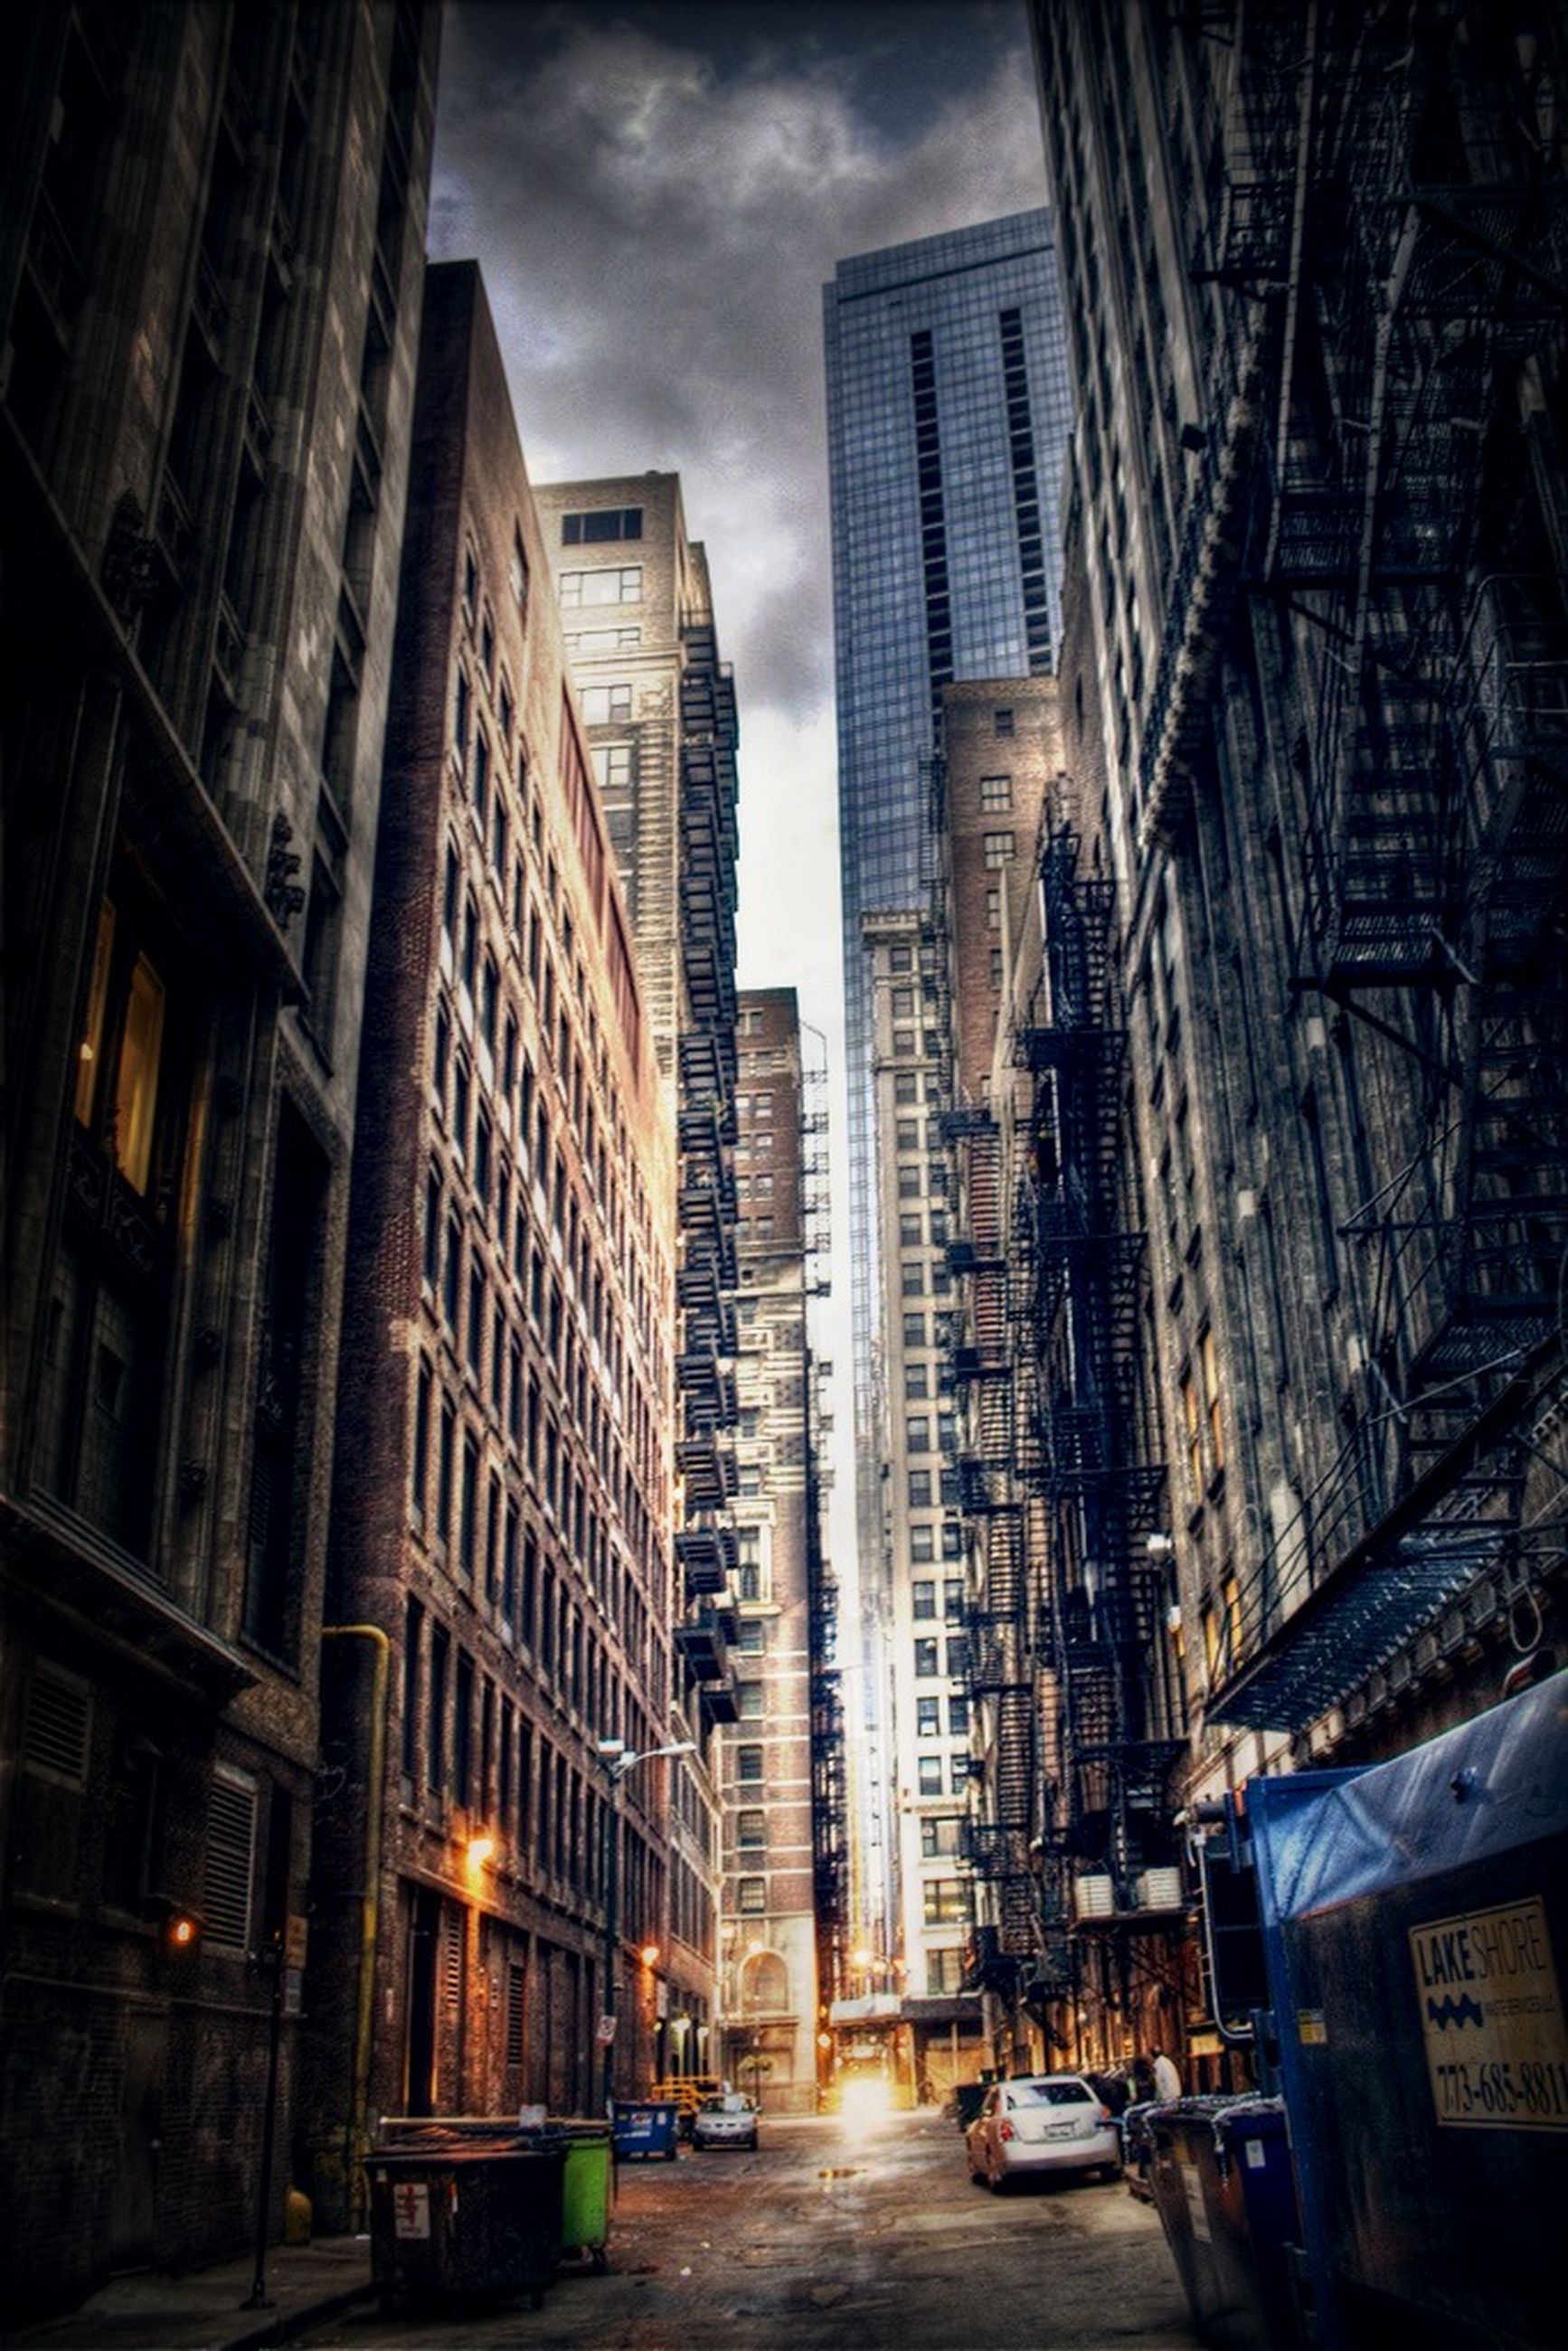 building exterior, architecture, city, built structure, street, car, skyscraper, transportation, sky, land vehicle, road, building, office building, city life, the way forward, tall - high, modern, city street, illuminated, residential building